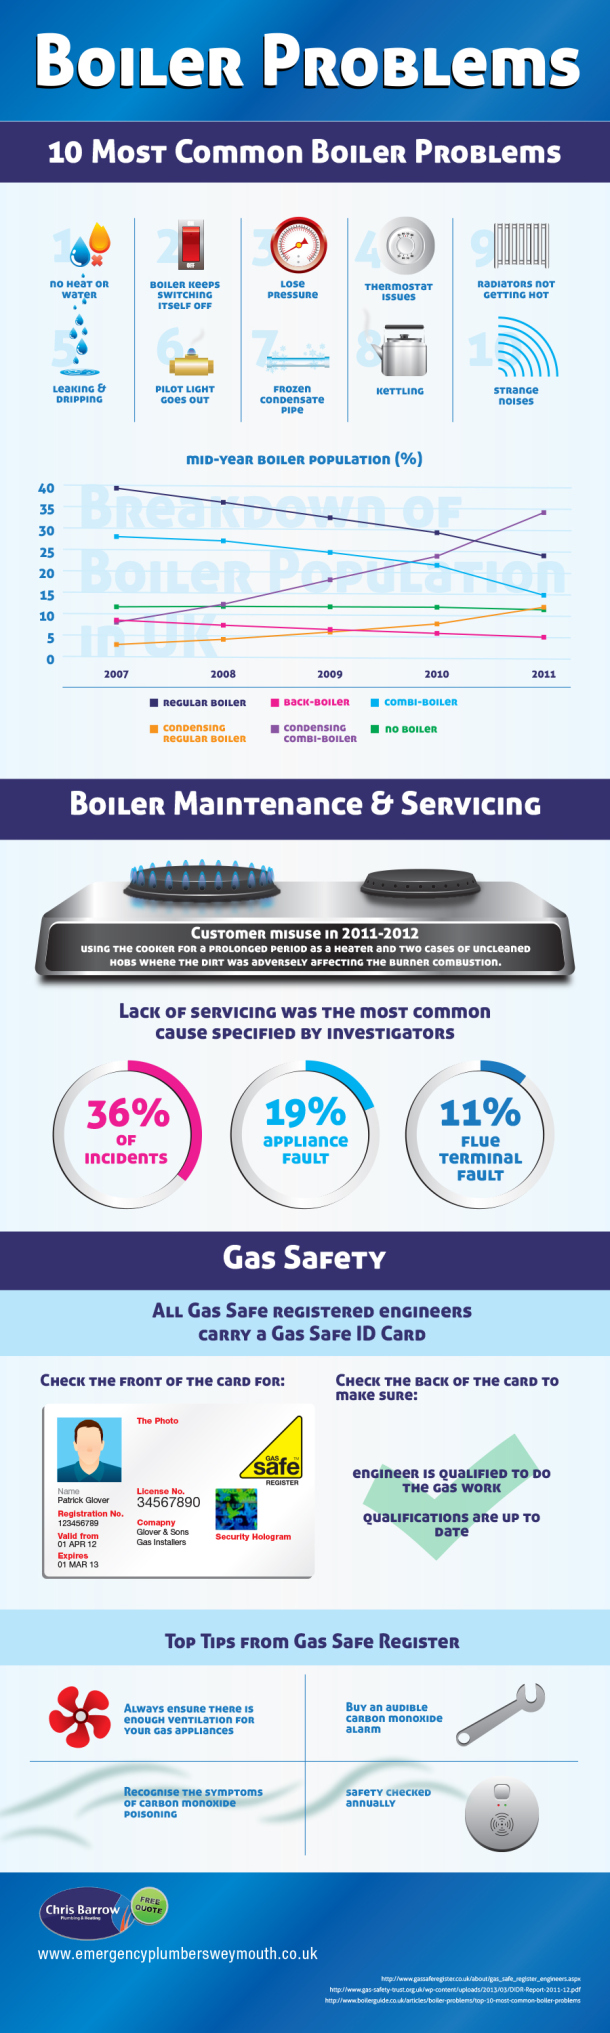 10 Most Common Boiler Problems Infographic Boiler Problem Boiler Infographic Boiler Repair